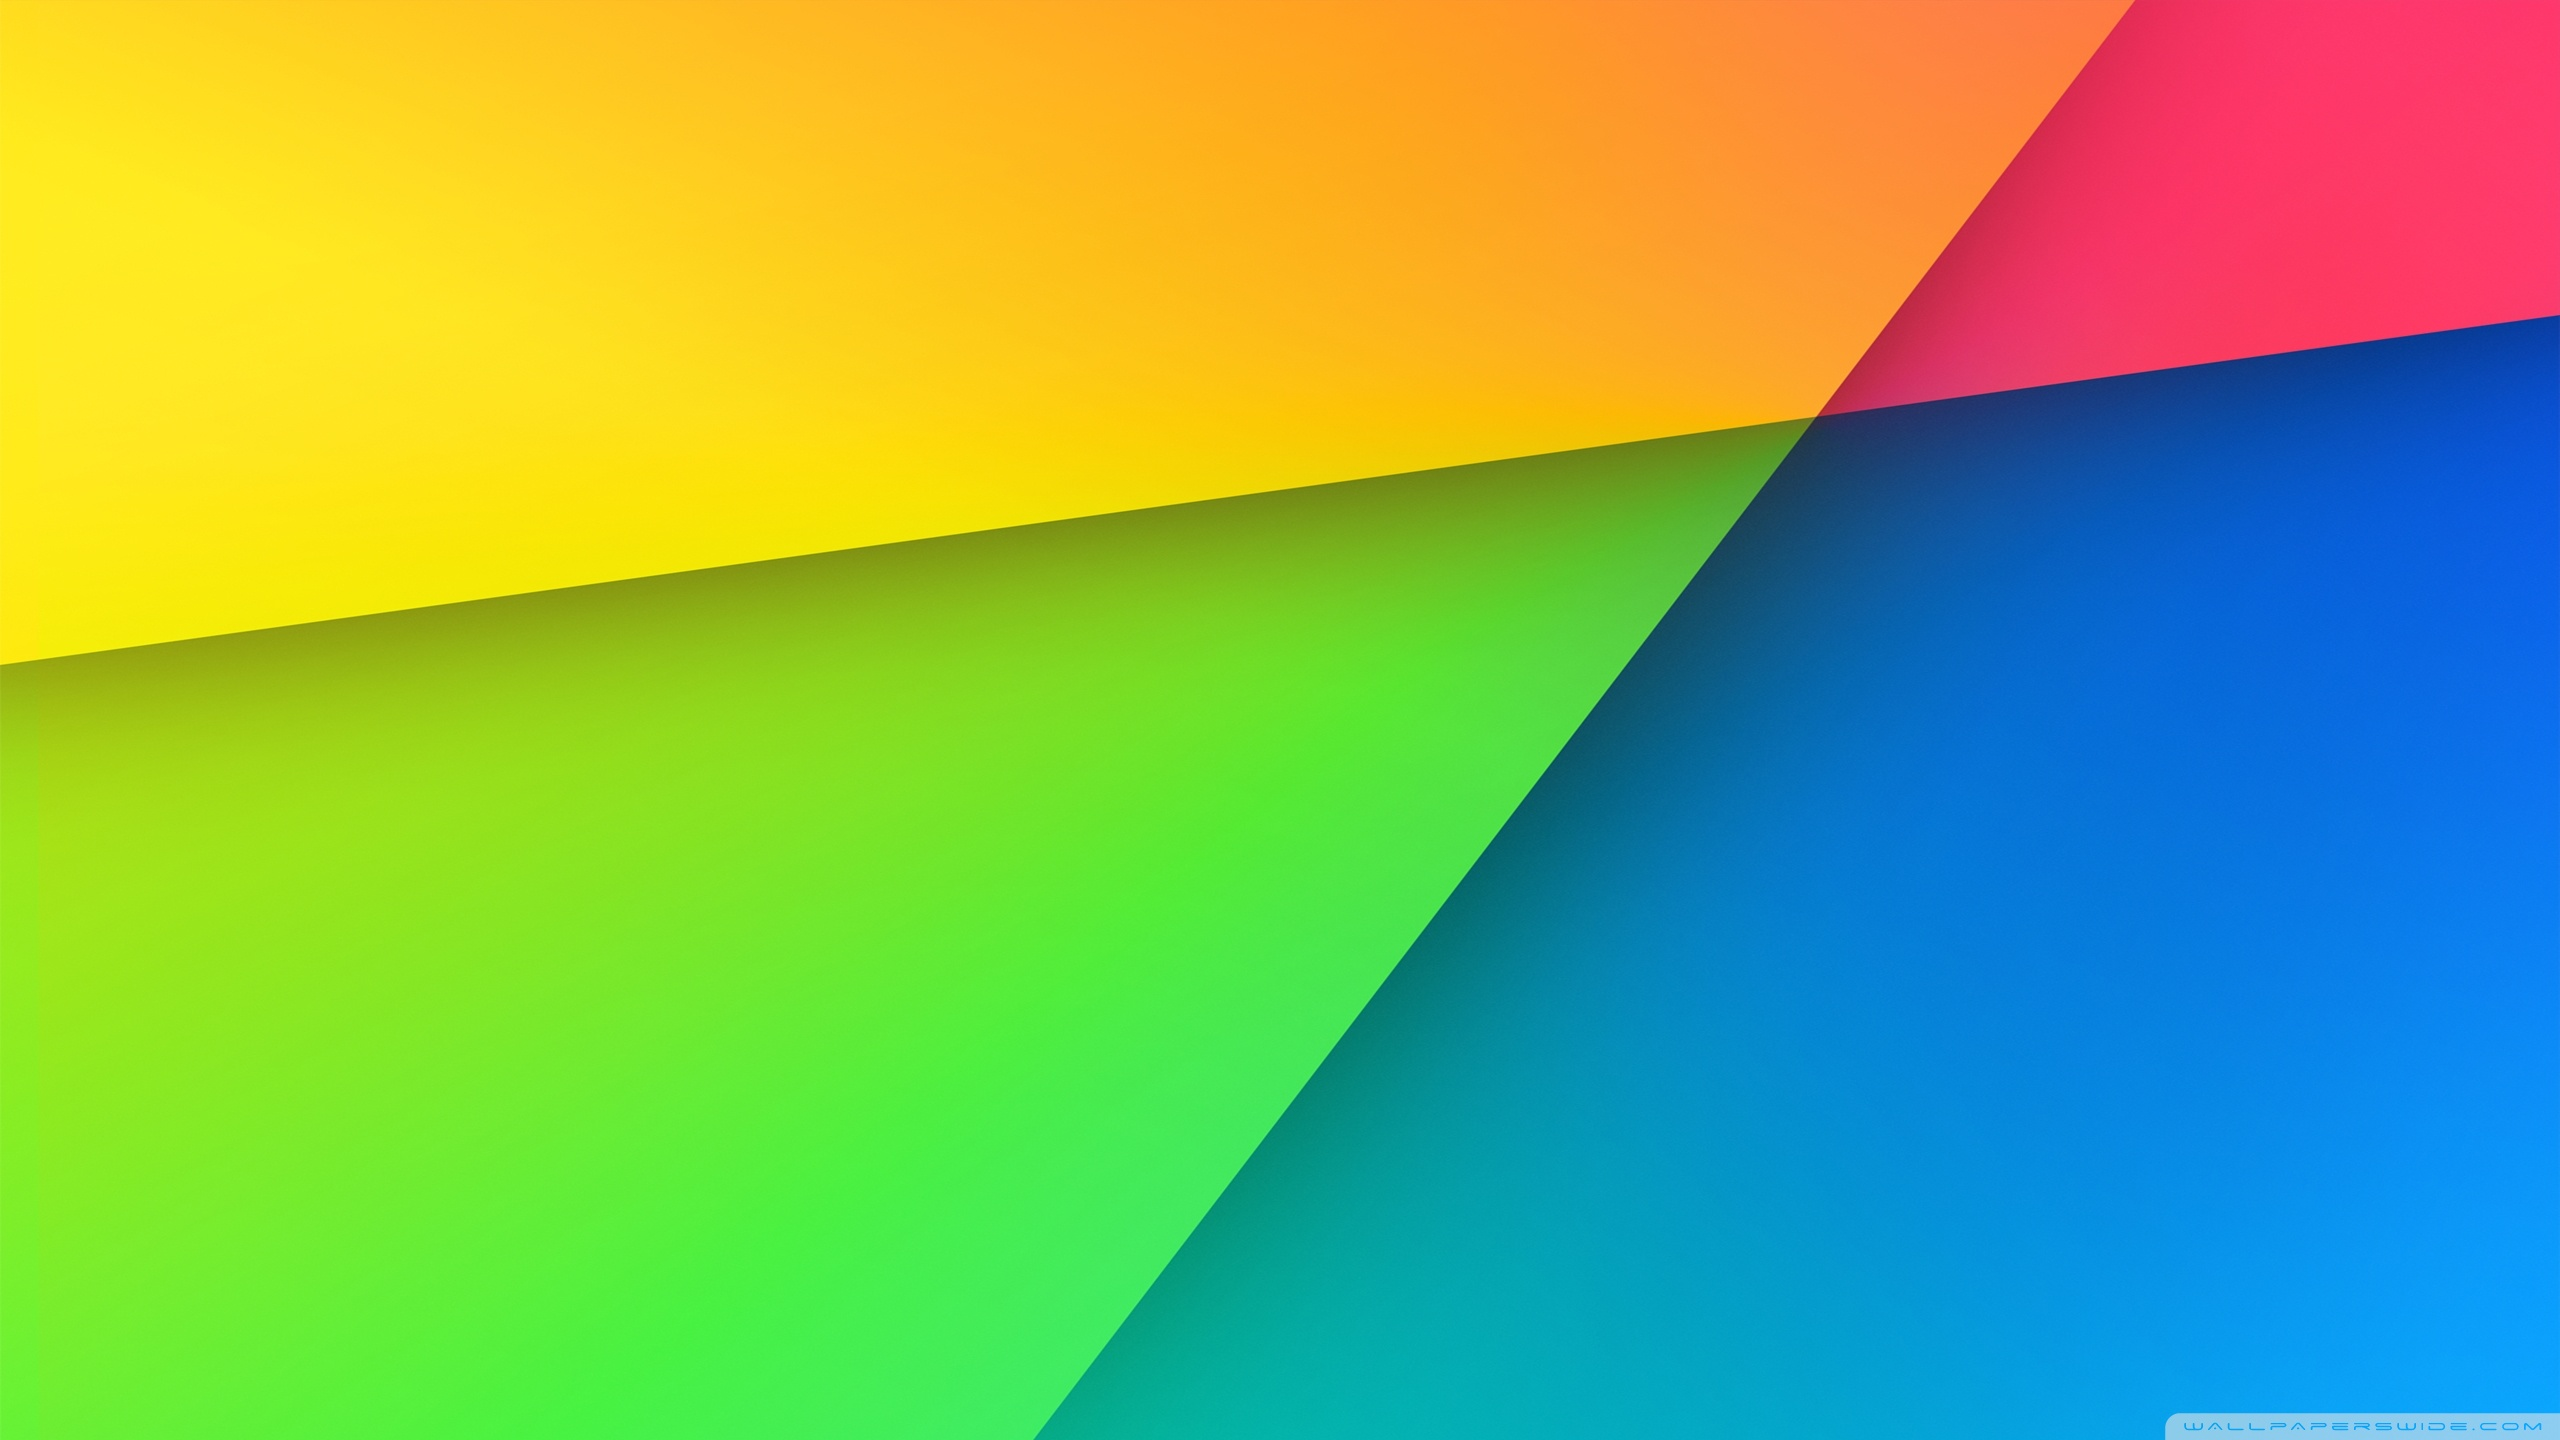 Google Nexus Wallpapers HD